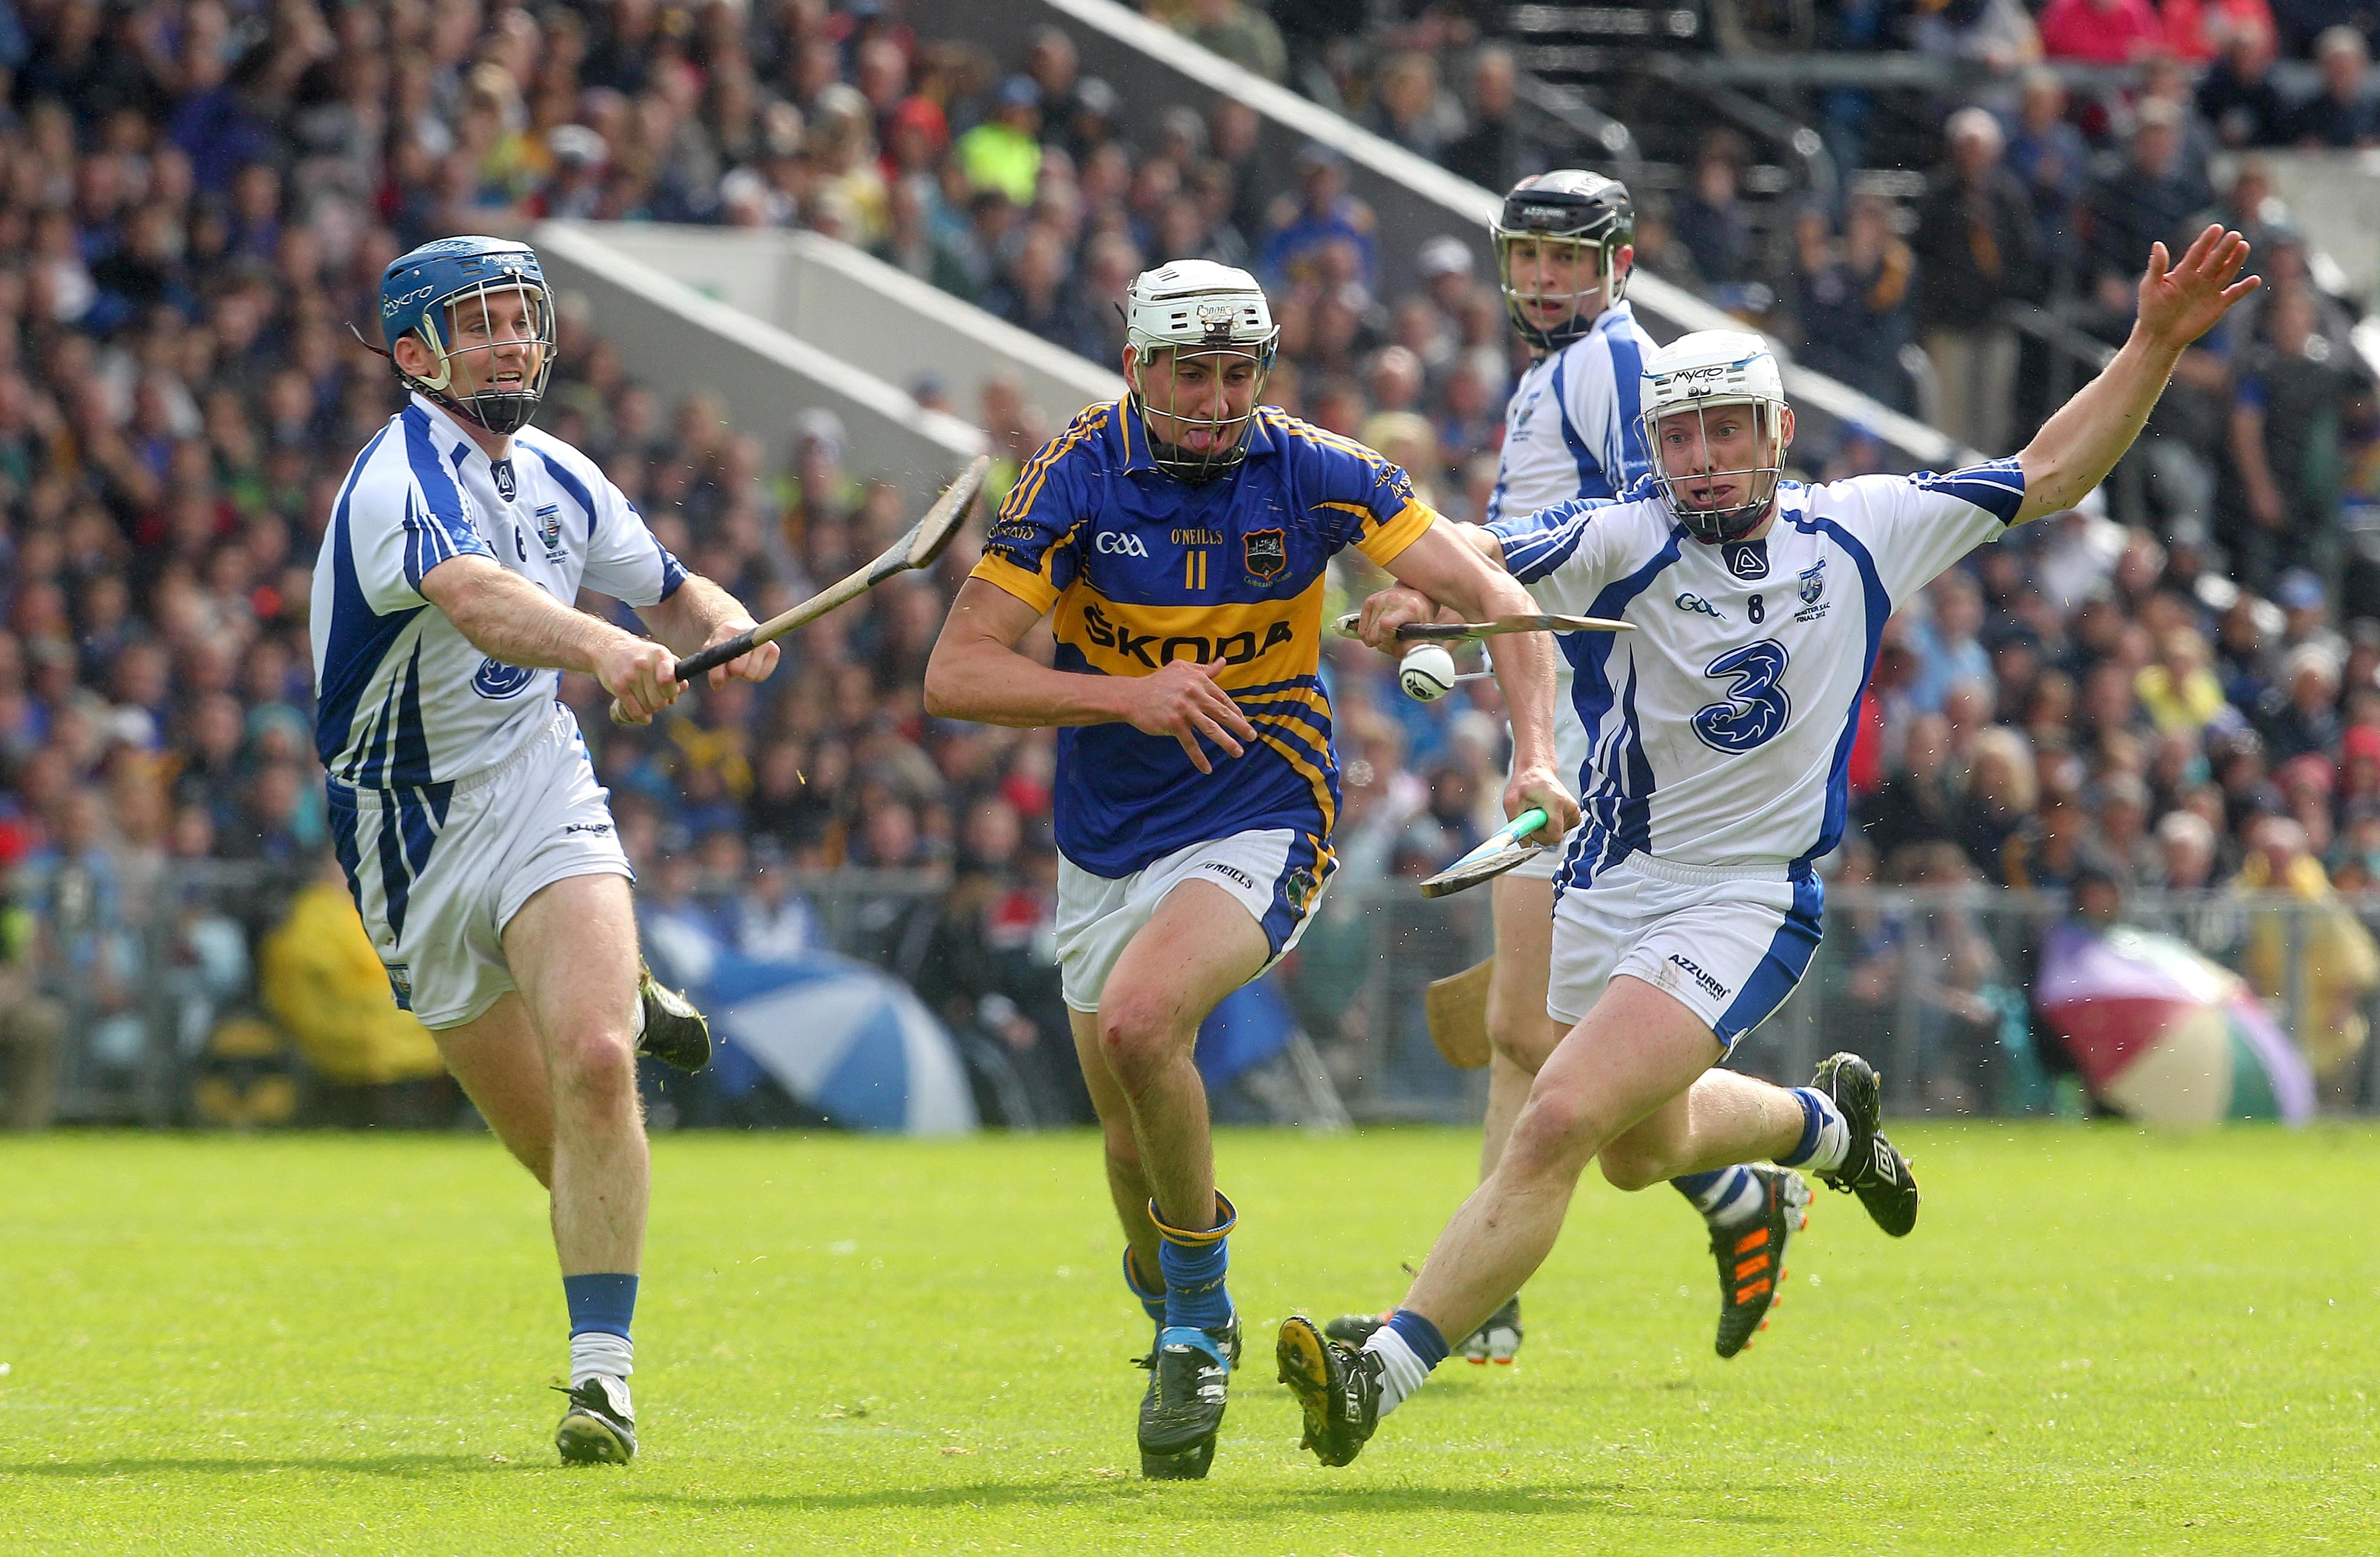 Tipperary's Patrick Maher tackled by Michael Walsh and Stephen Molumphy of Waterford.